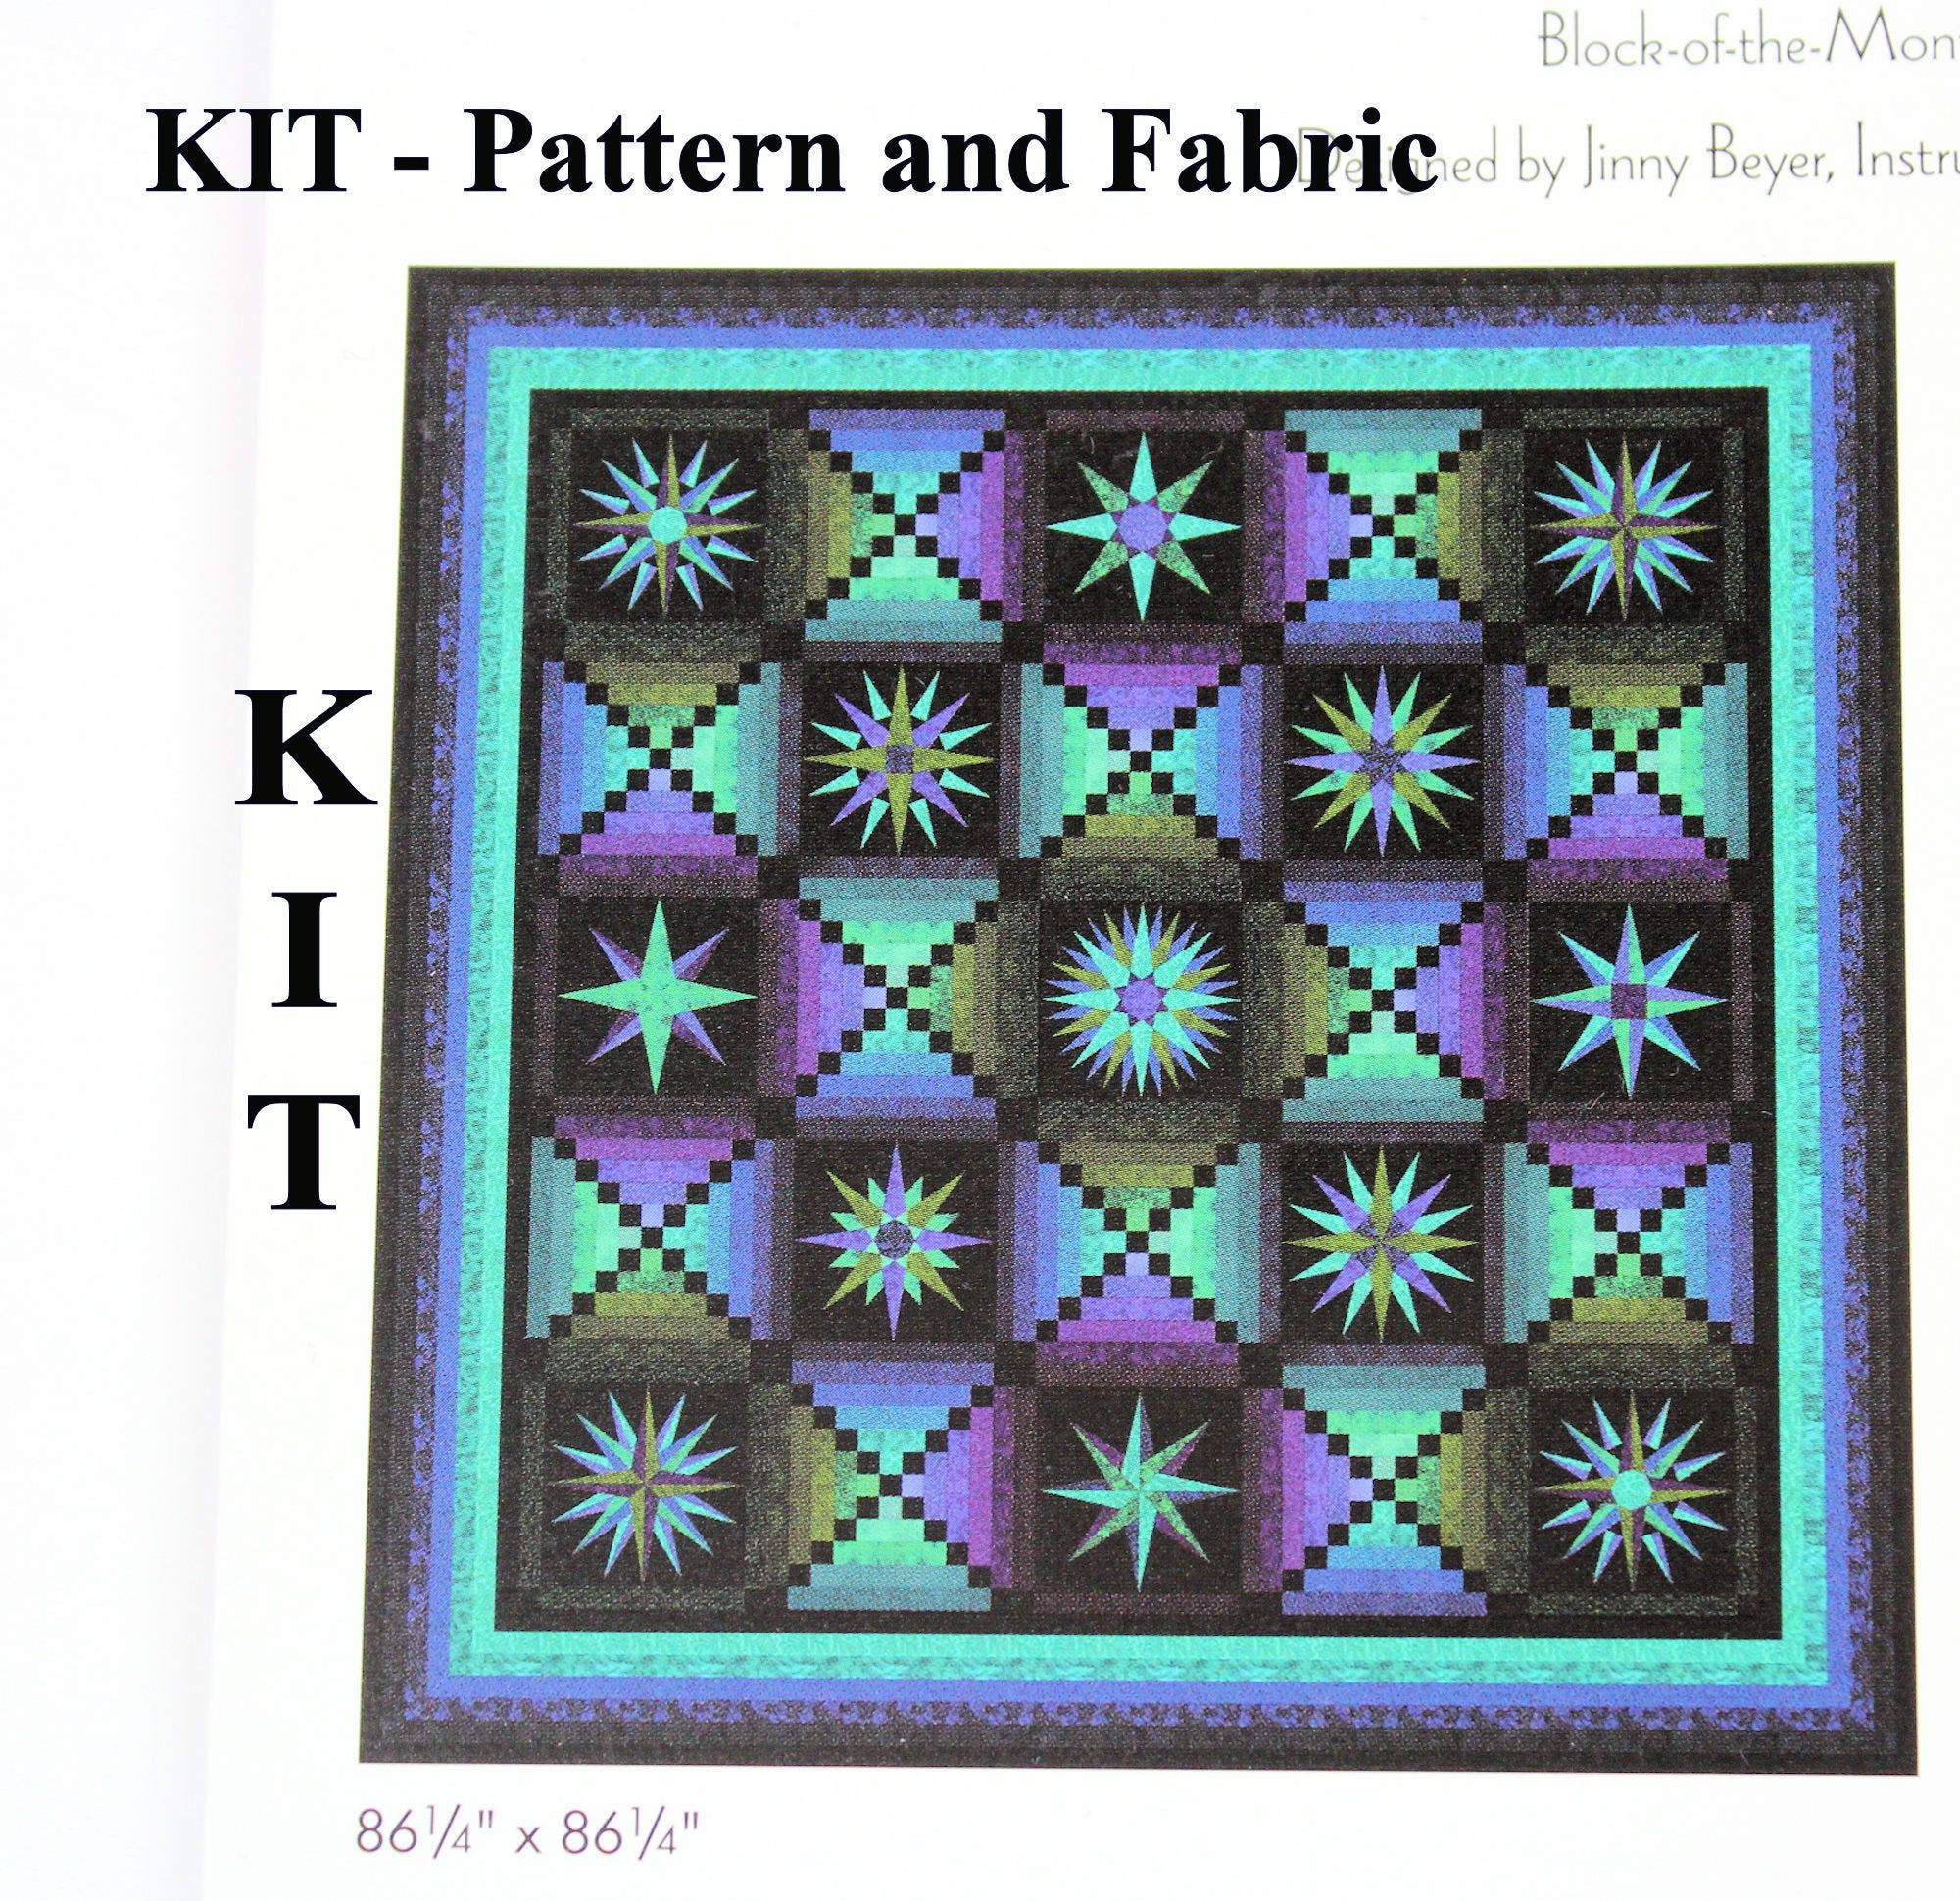 Quilt Kit Moon Glow By Jinny Beyer Including Border And Binding Fabrics Block Of The Month Complete Kit By Quil Quilt Kit Quilt Kits Cotton Quilting Fabric